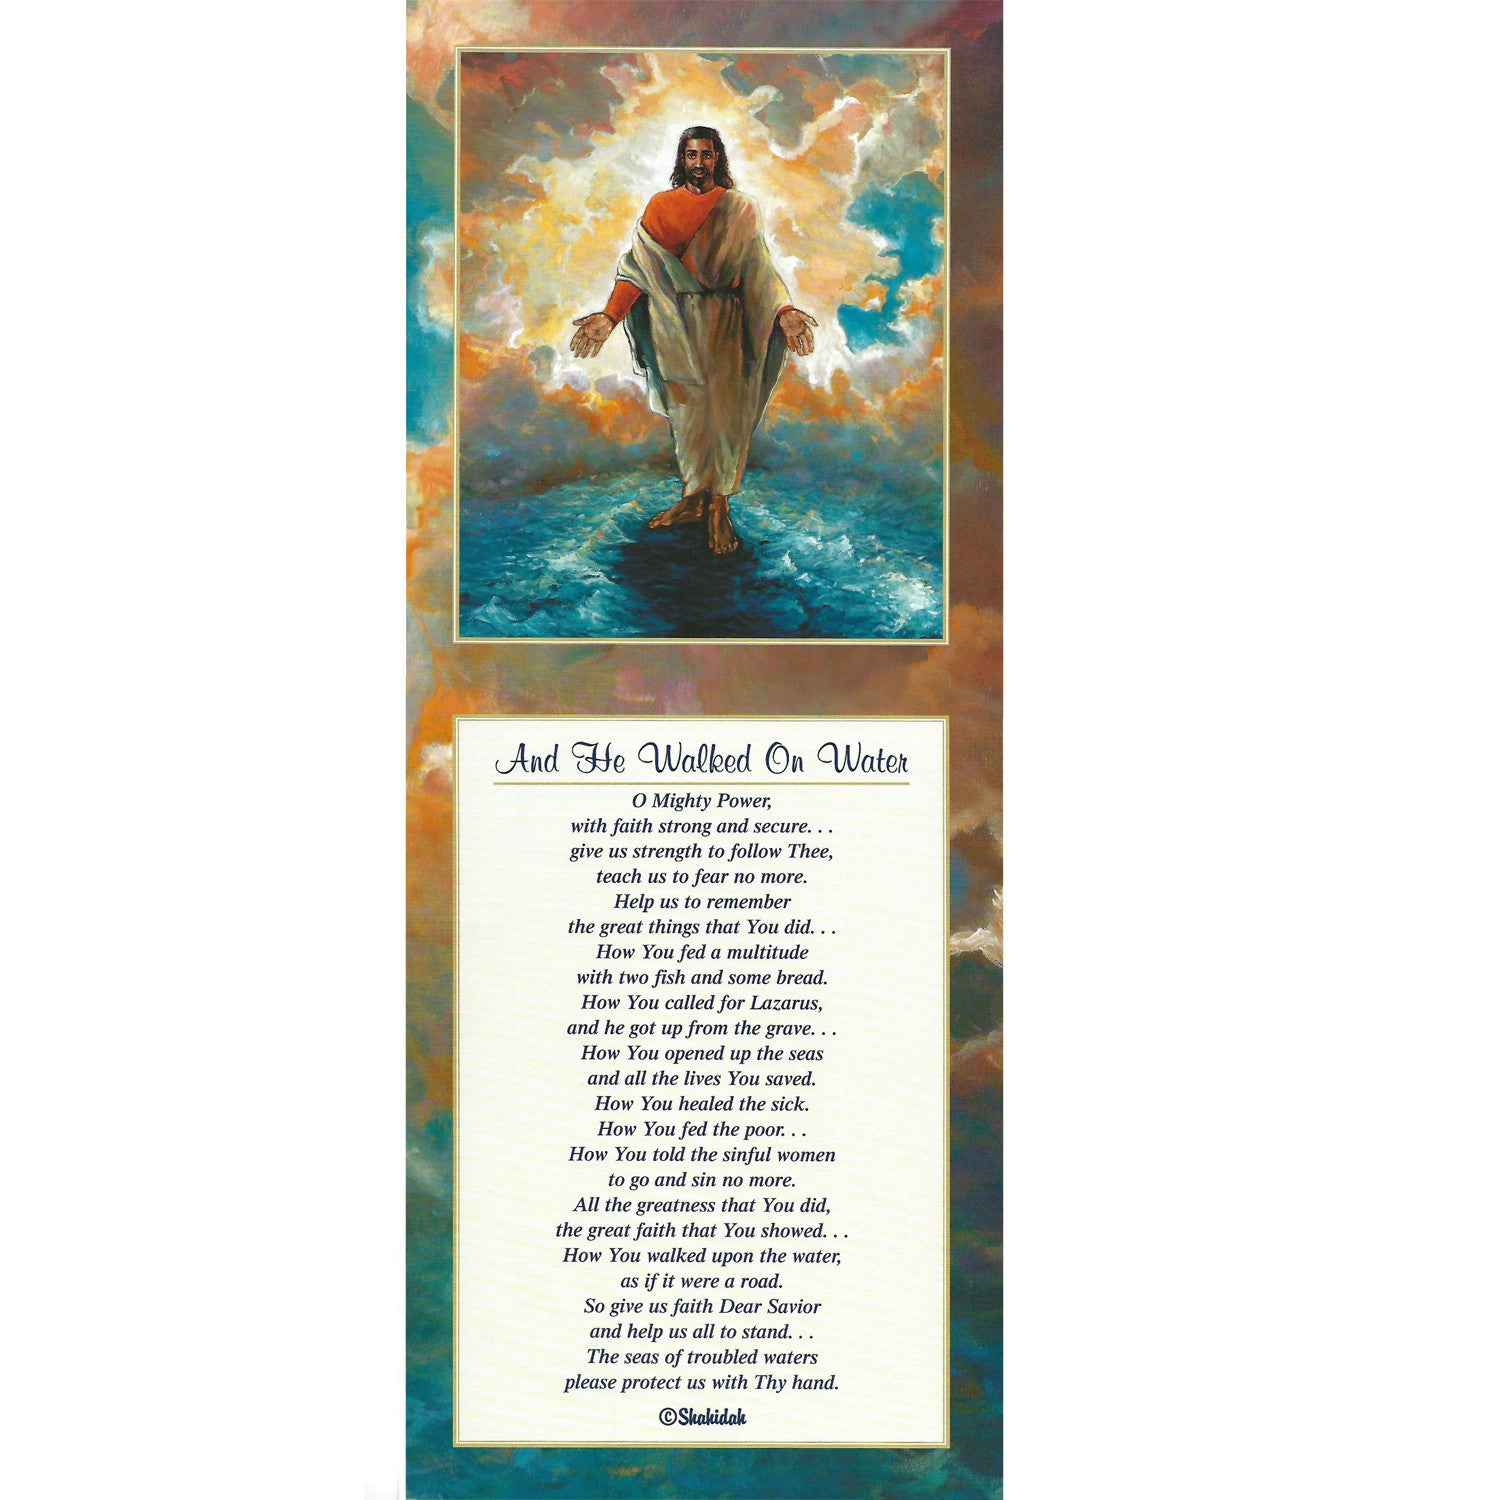 And He Walked on Water by Katherine Roundtree and Shahidah (Art Print)